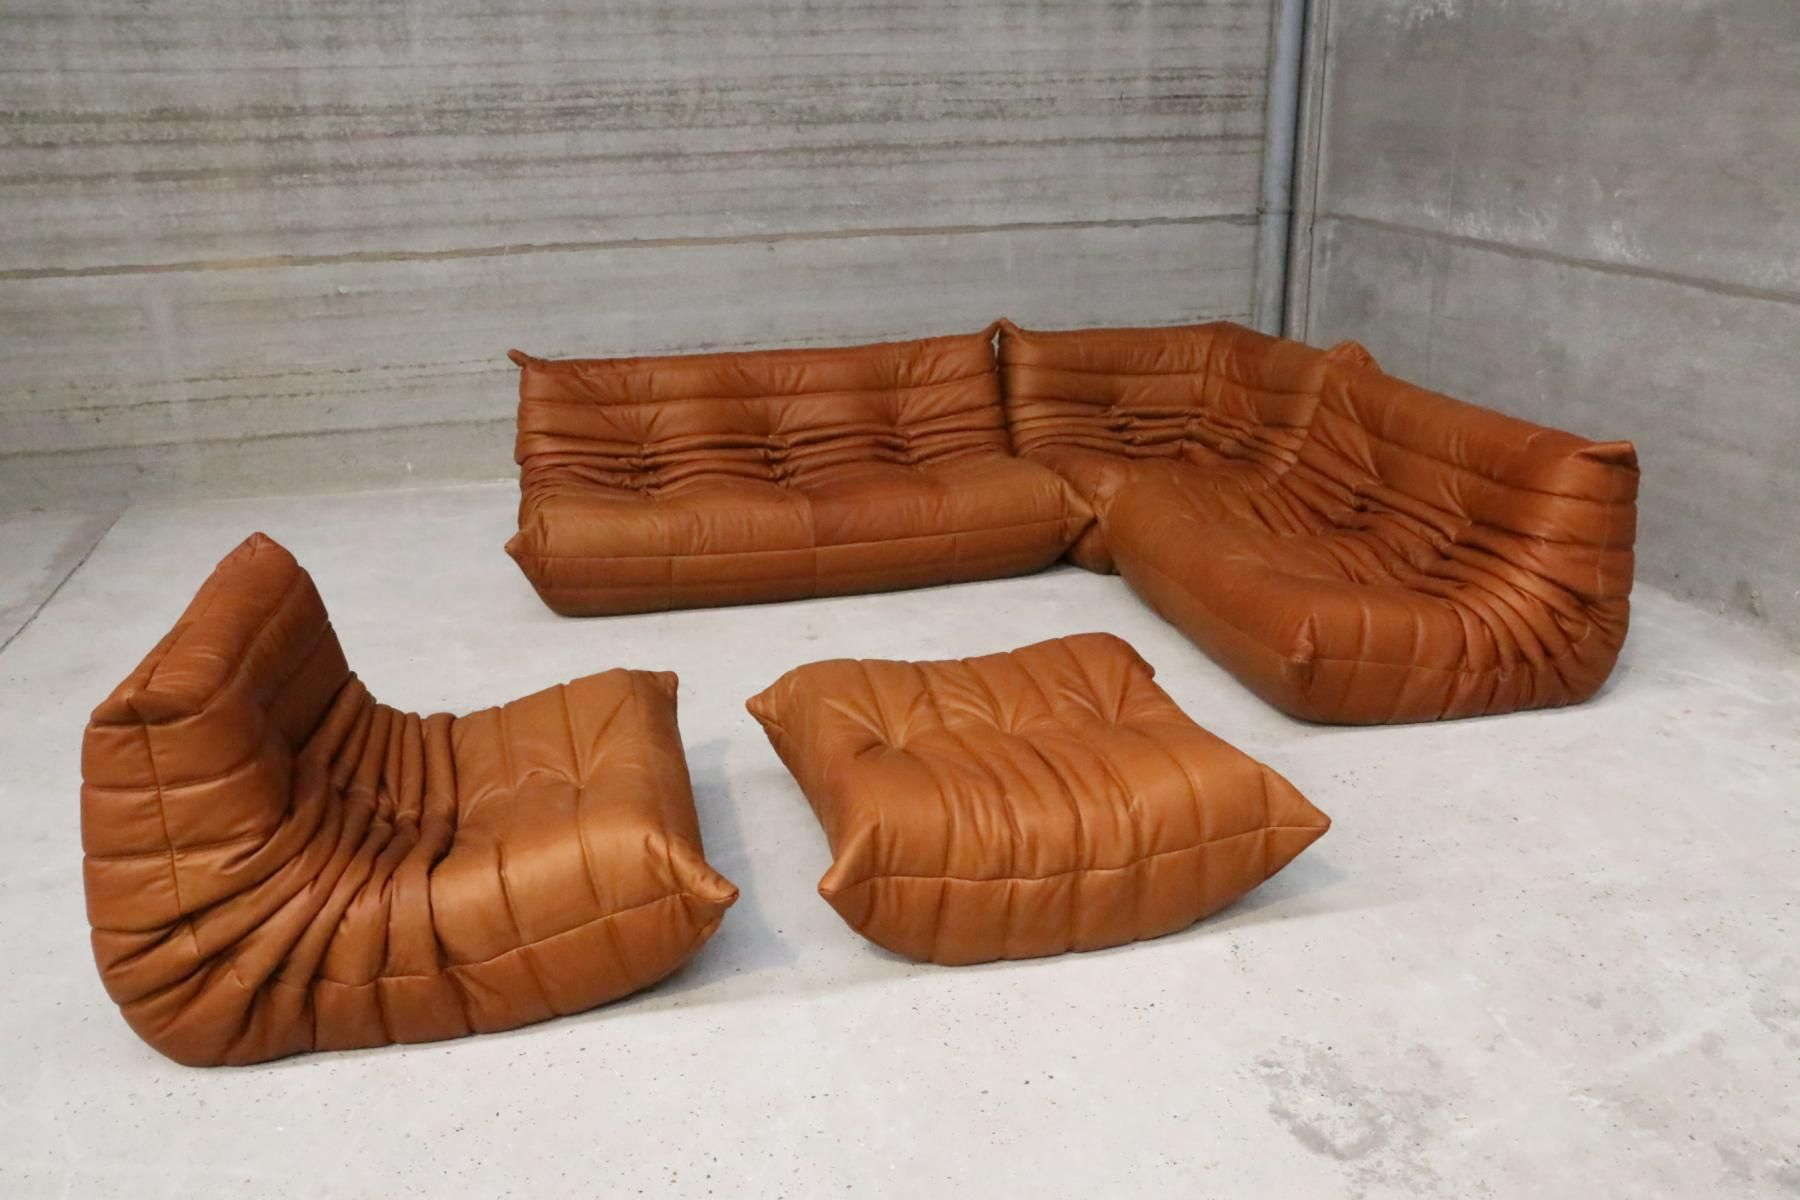 Meubles Accent Furniture Rockland Vintage Cognac Leather Togo Set By Michel Ducaroy For Ligne Roset